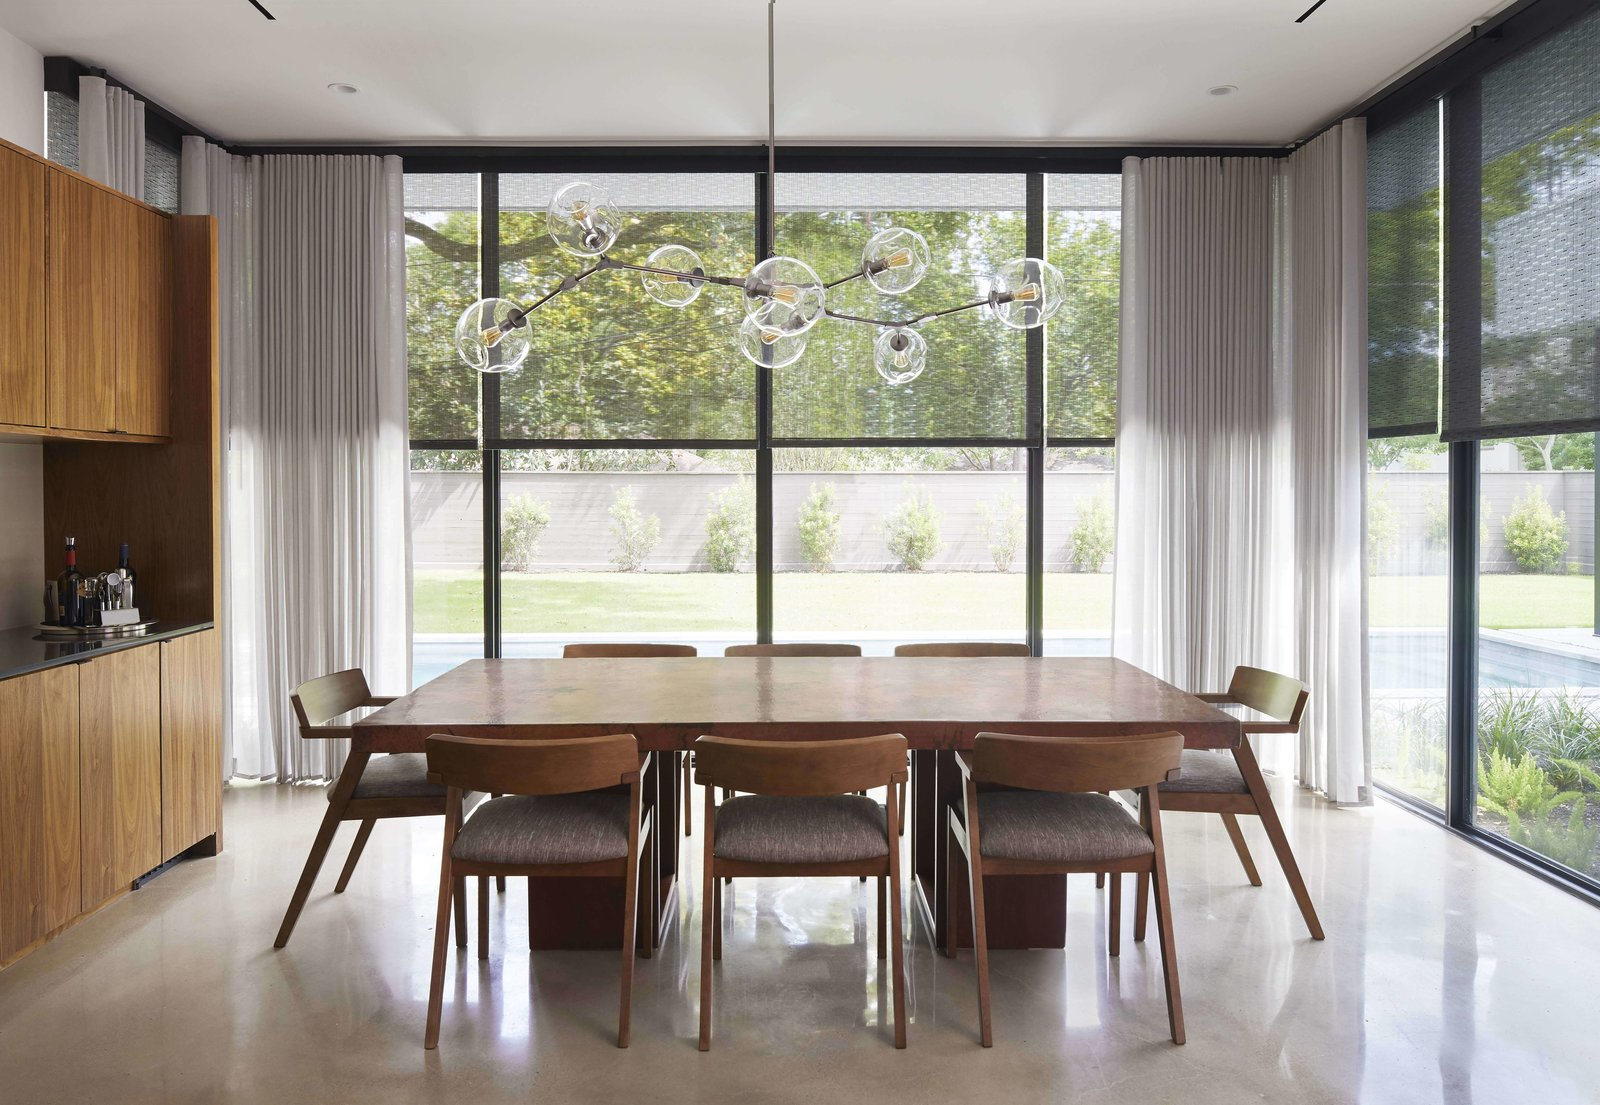 Photo 3 of 3 in Modern Shades and Draperies Integrate Seamlessly Into a Houston Renovation